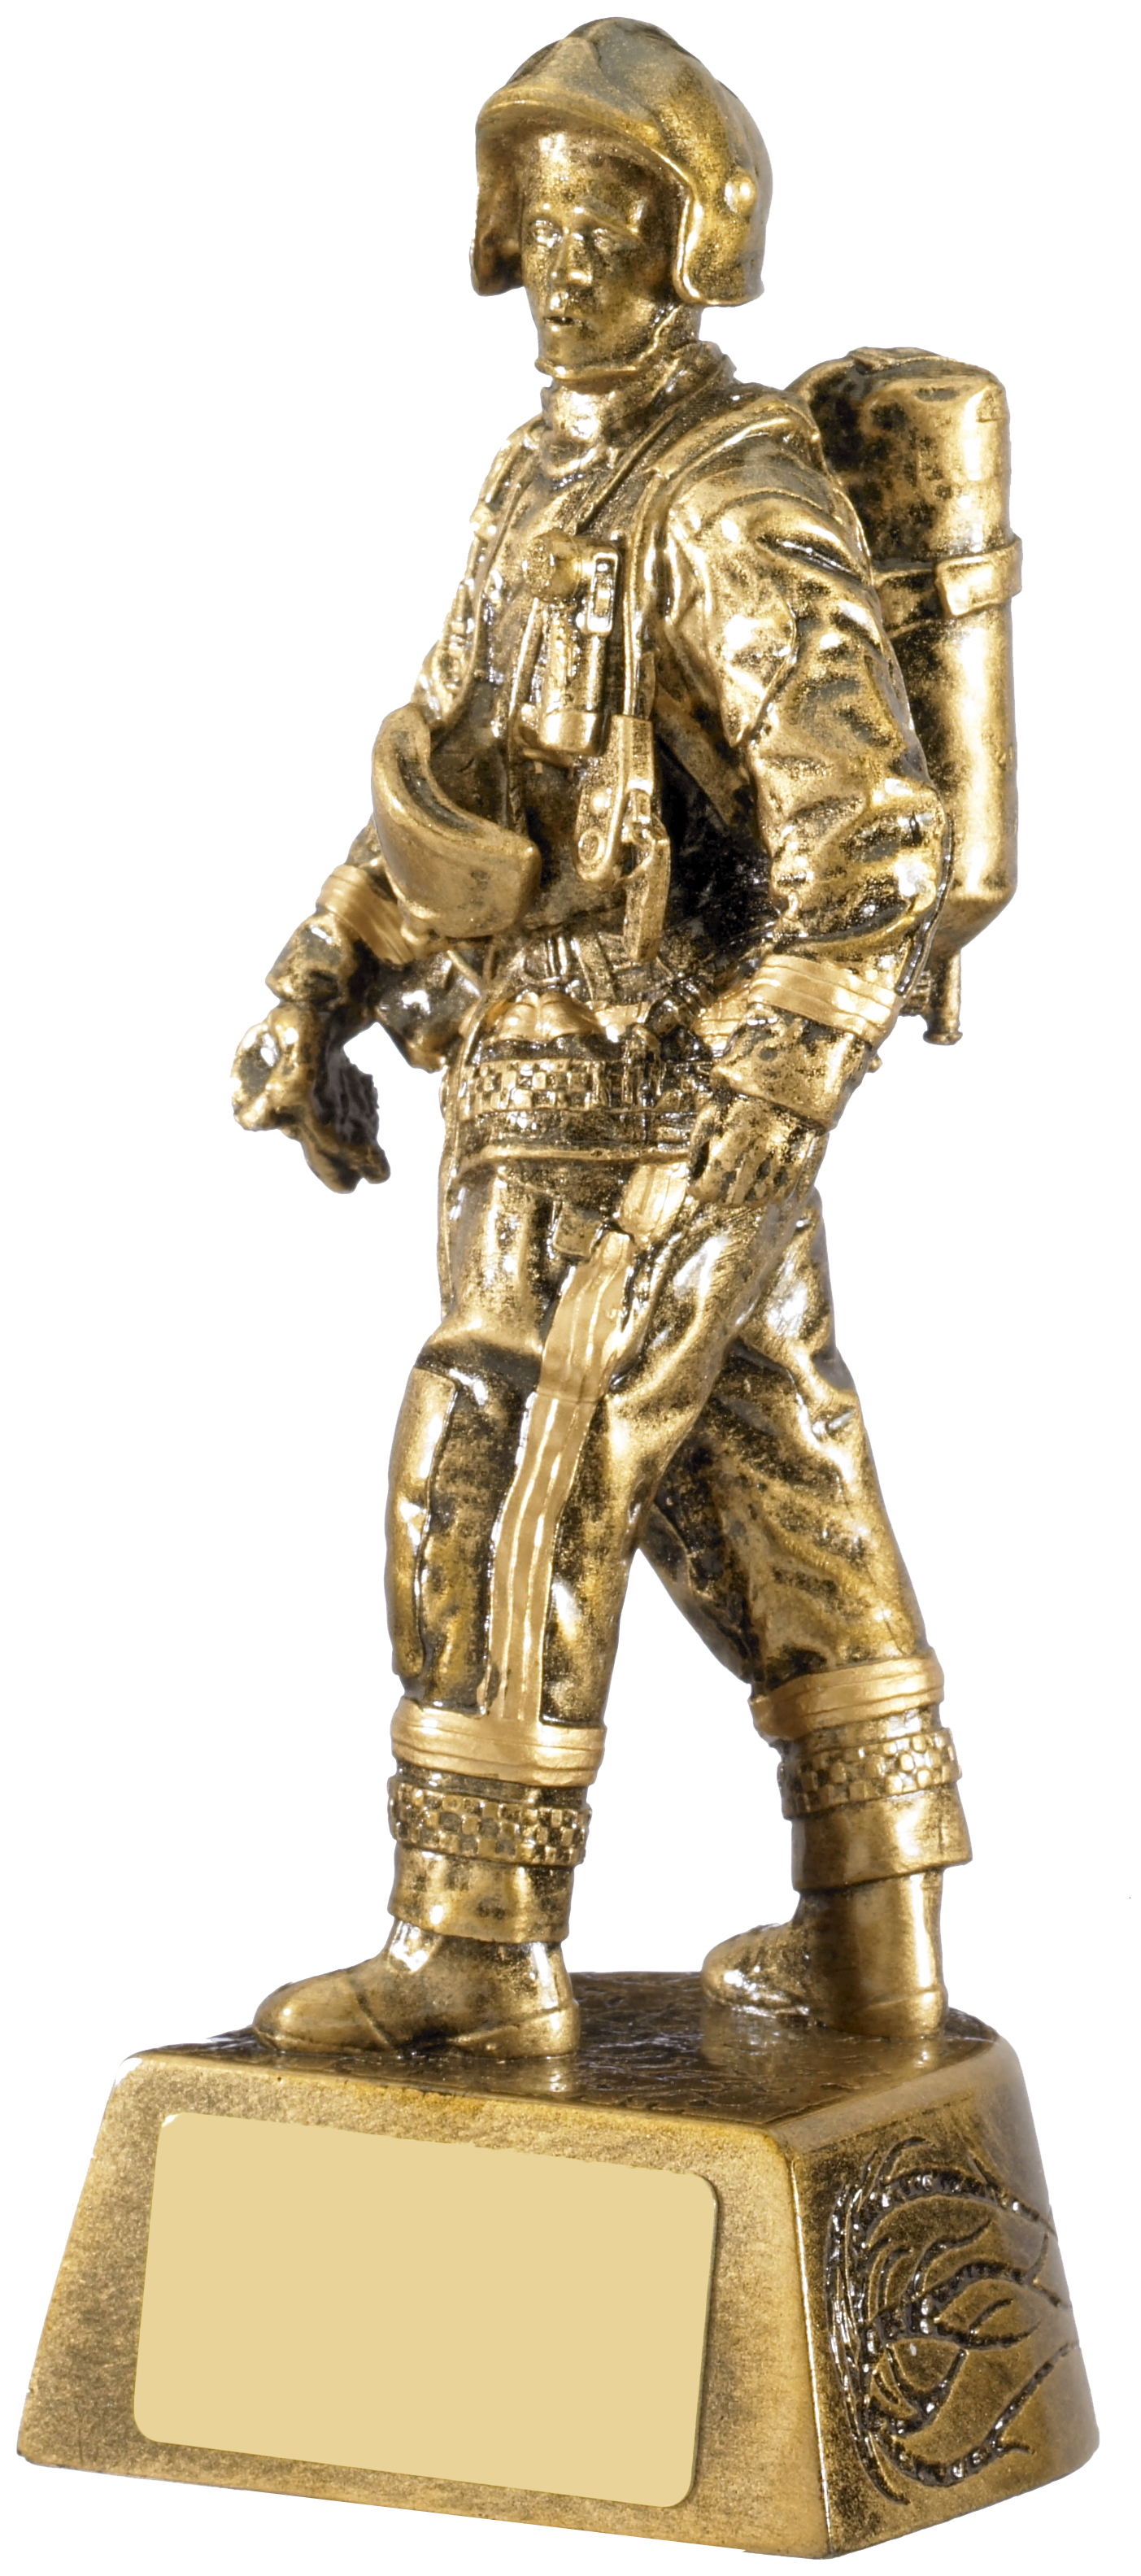 "Firefighter Figure Trophy Antique Gold 19.5cm (7.75"")"